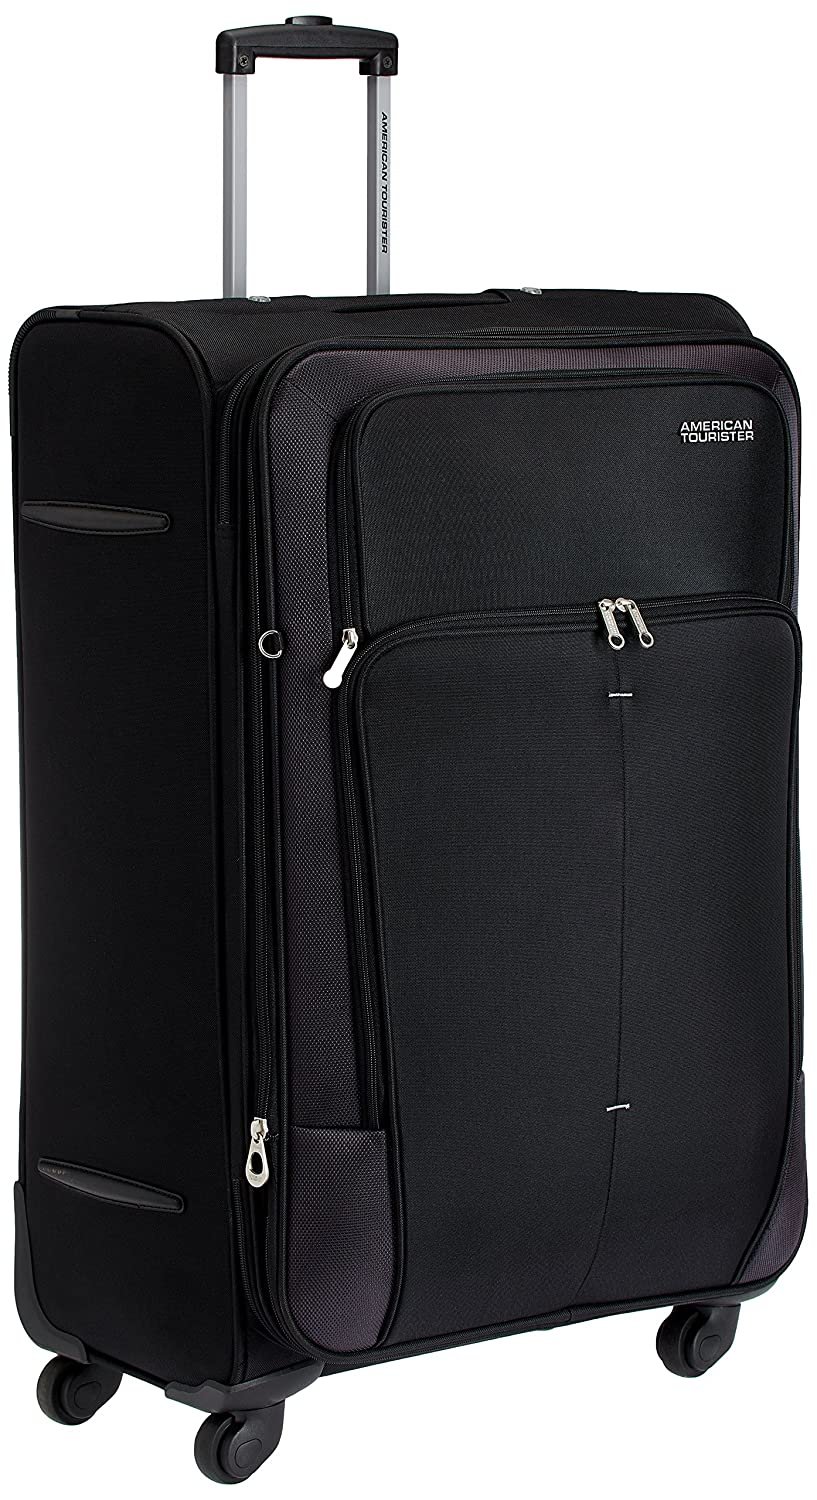 American Tourister Crete Polyester 77cms Black Softsided Suitcase (49W (0) 09 003) By Amazon @ Rs.5,369